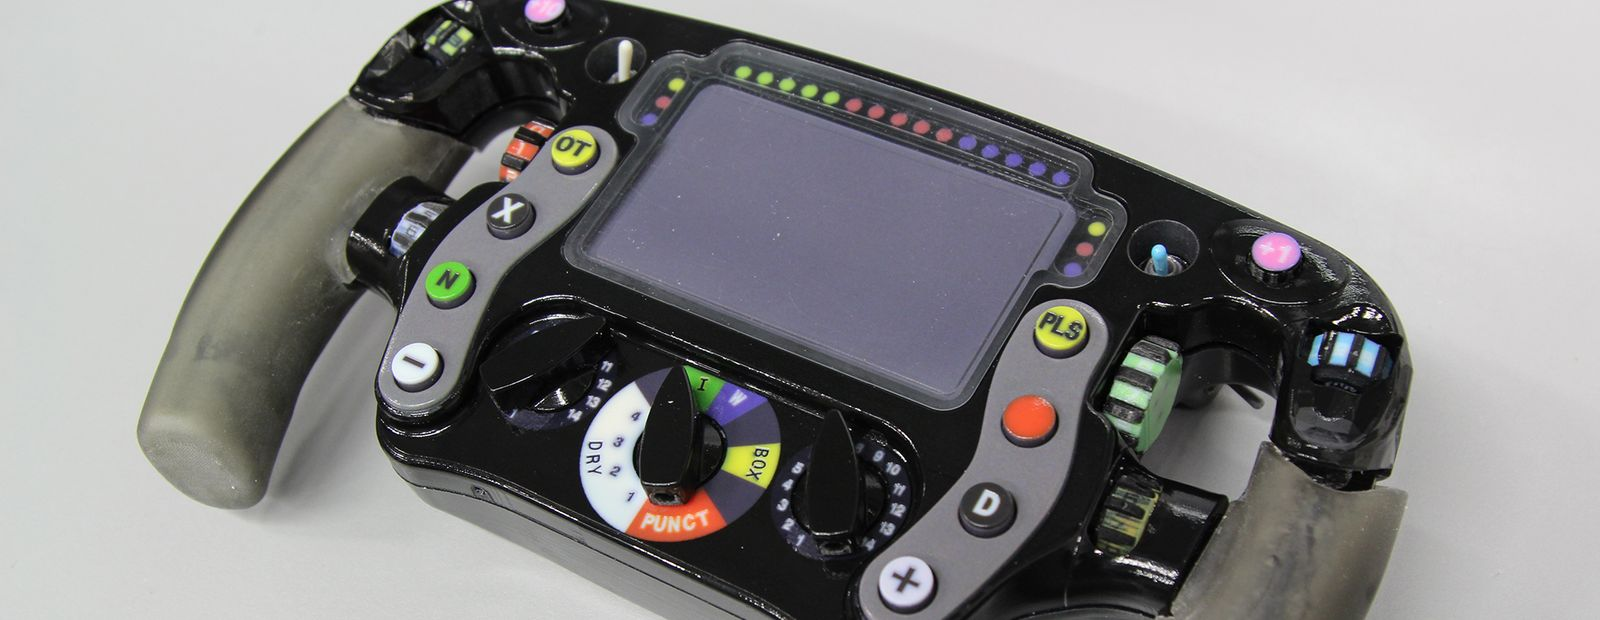 mclaren wire harness wiring diagram Bus Wire Harness mclaren wire harness wiring librarymclaren formula 1 mclaren deploys stratasys additive manufacturing to improve 2017 car